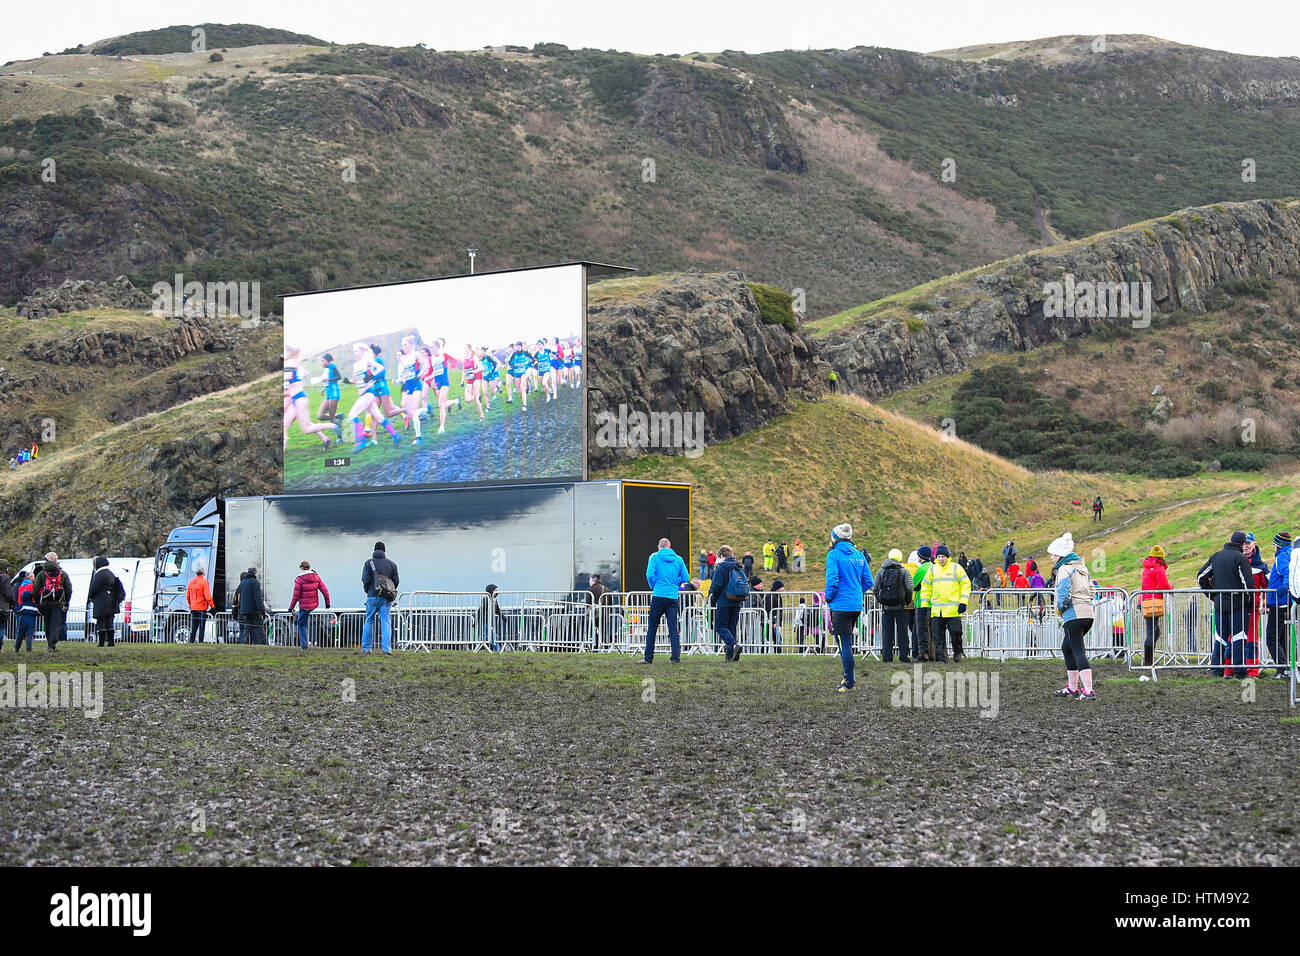 EDINBURGH, SCOTLAND, UK, January 10, 2015 - public enjoying the Great Edinburgh Cross Country Run despite  bad weather. - Stock Image